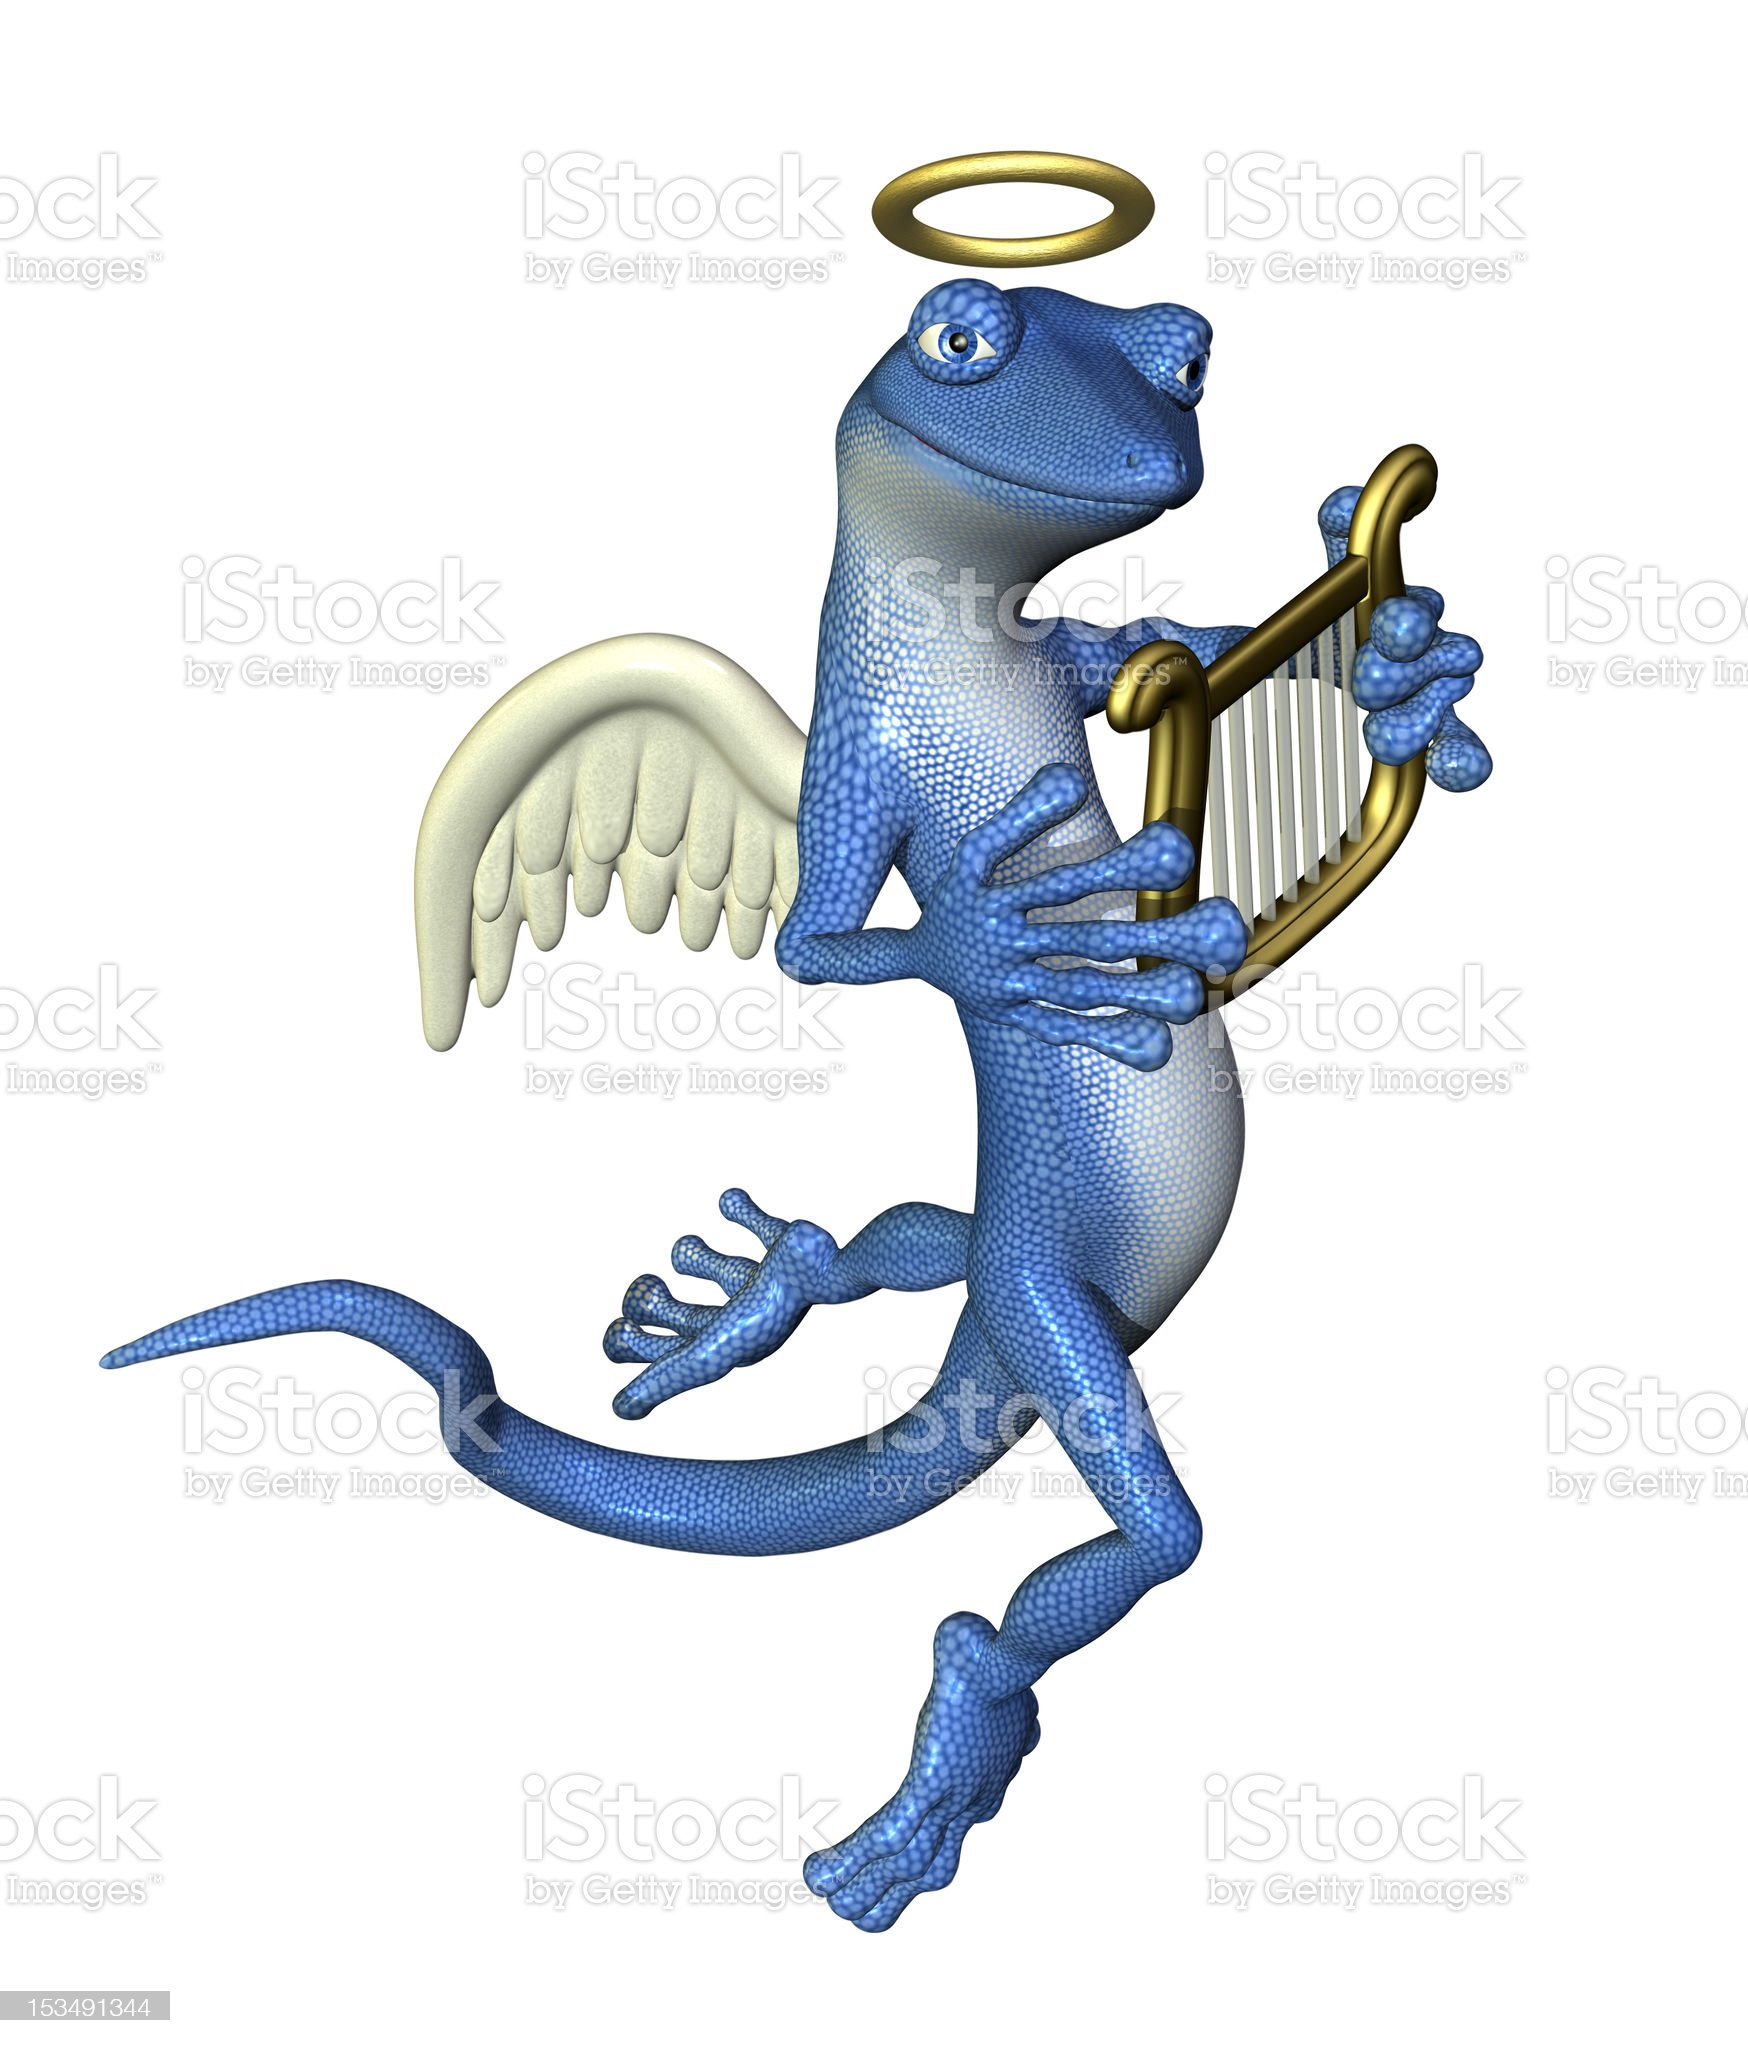 Angel Gecko royalty-free stock photo